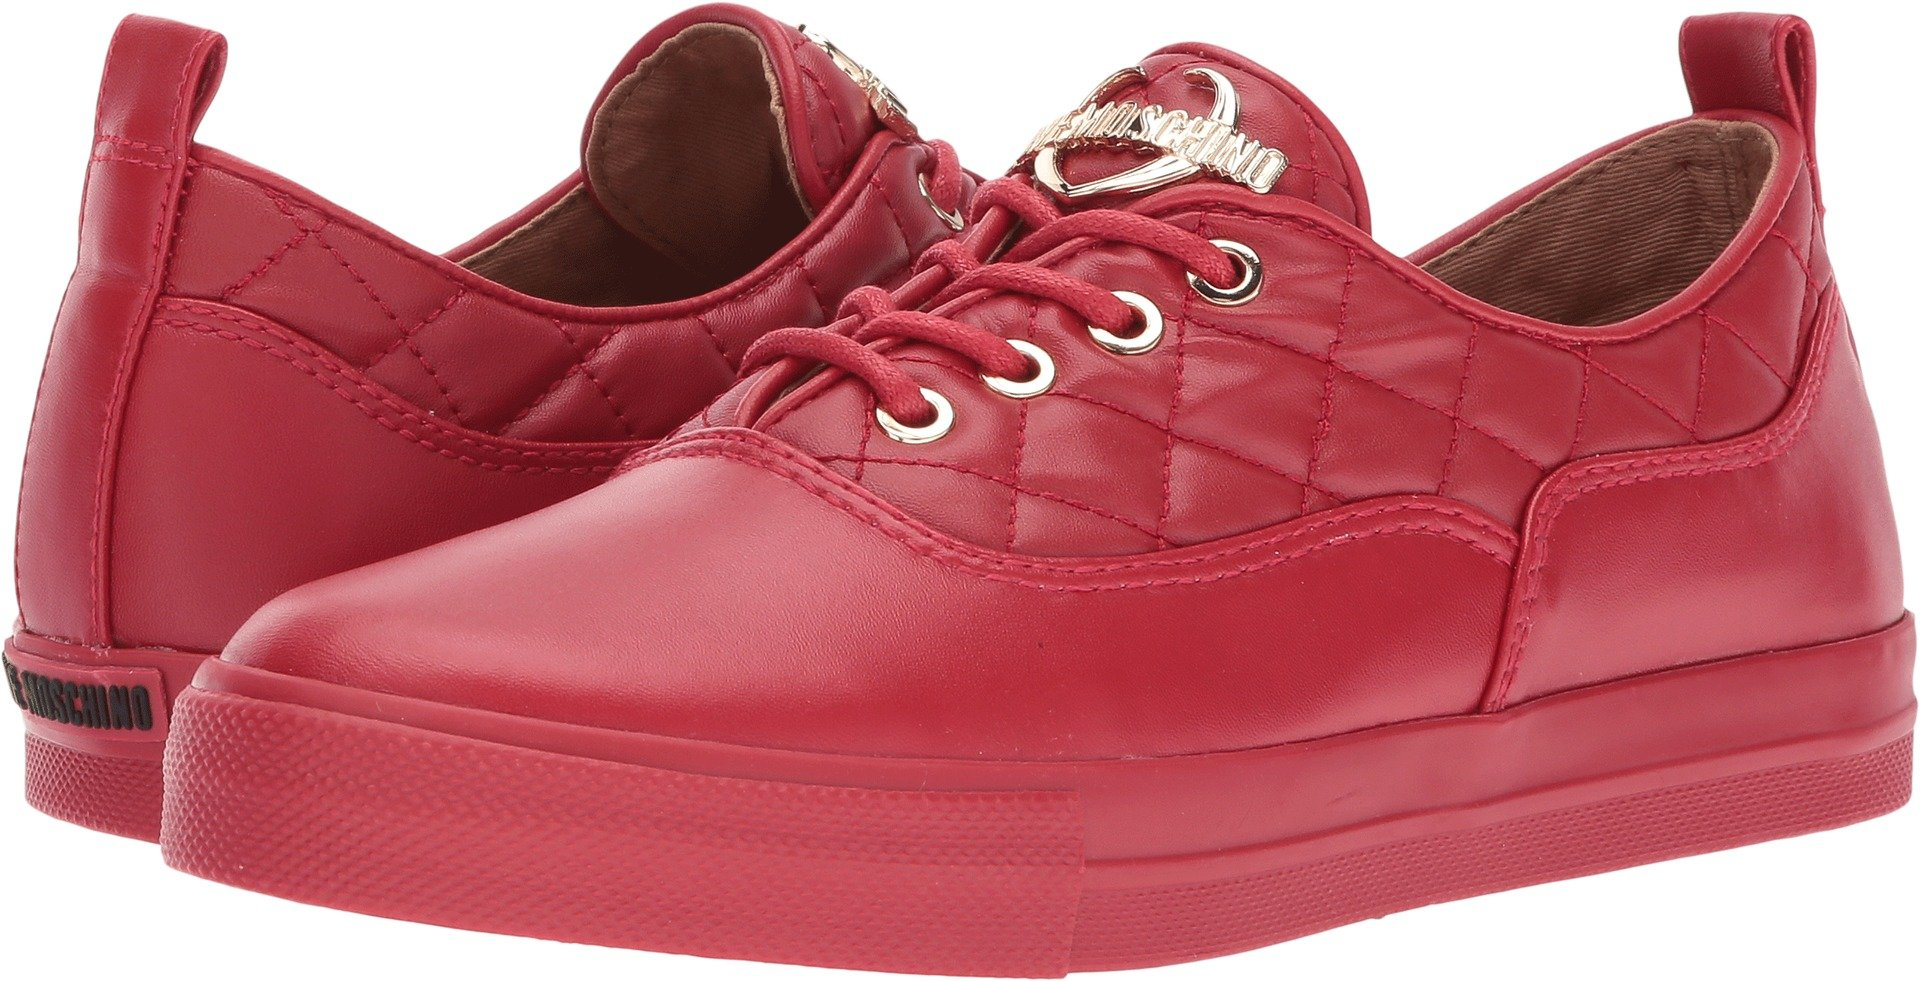 LOVE Moschino Women's Quilted Low Top Red Shoe